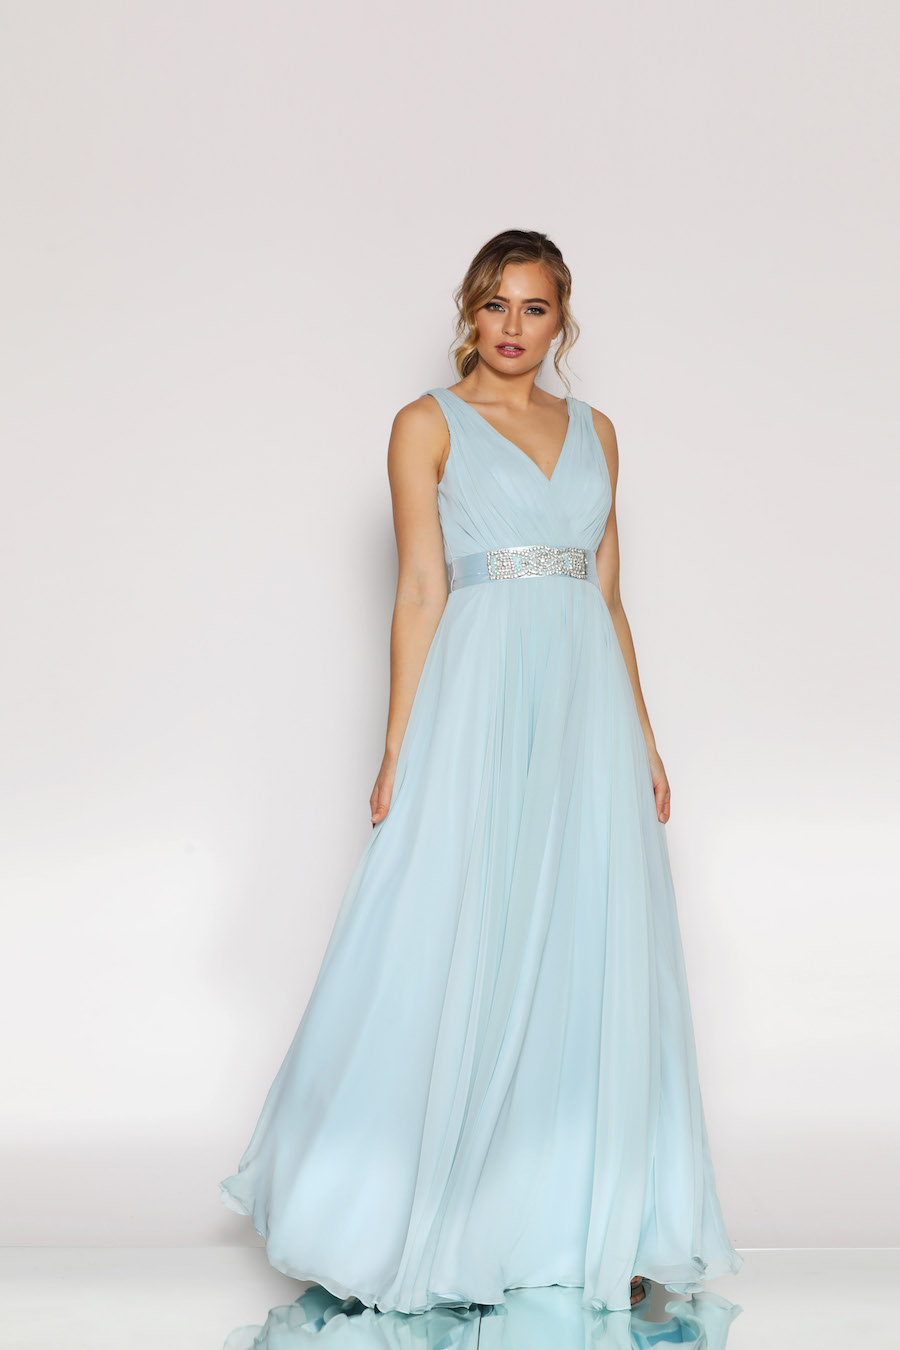 V Neckline gathered bust full length gown with diamante belt thick or thin or plain satin belt